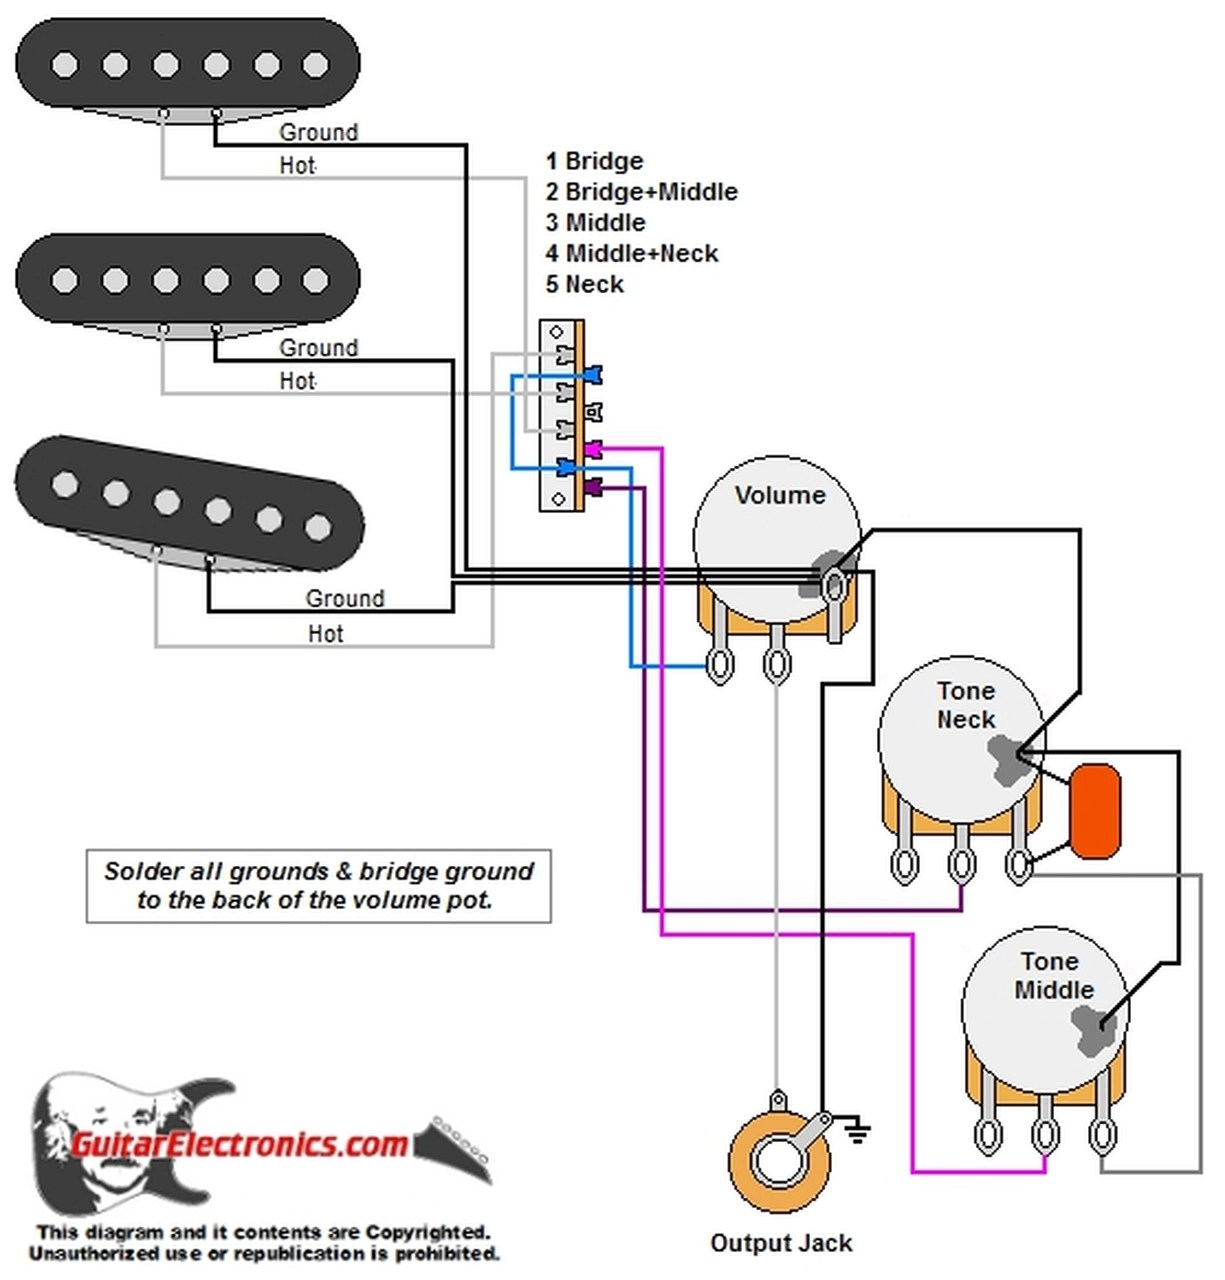 hight resolution of fender strat wiring diagram 5 way switch strat style guitar wiring diagramwdusss5l1201 80483 1481740458 jpg c u003d2